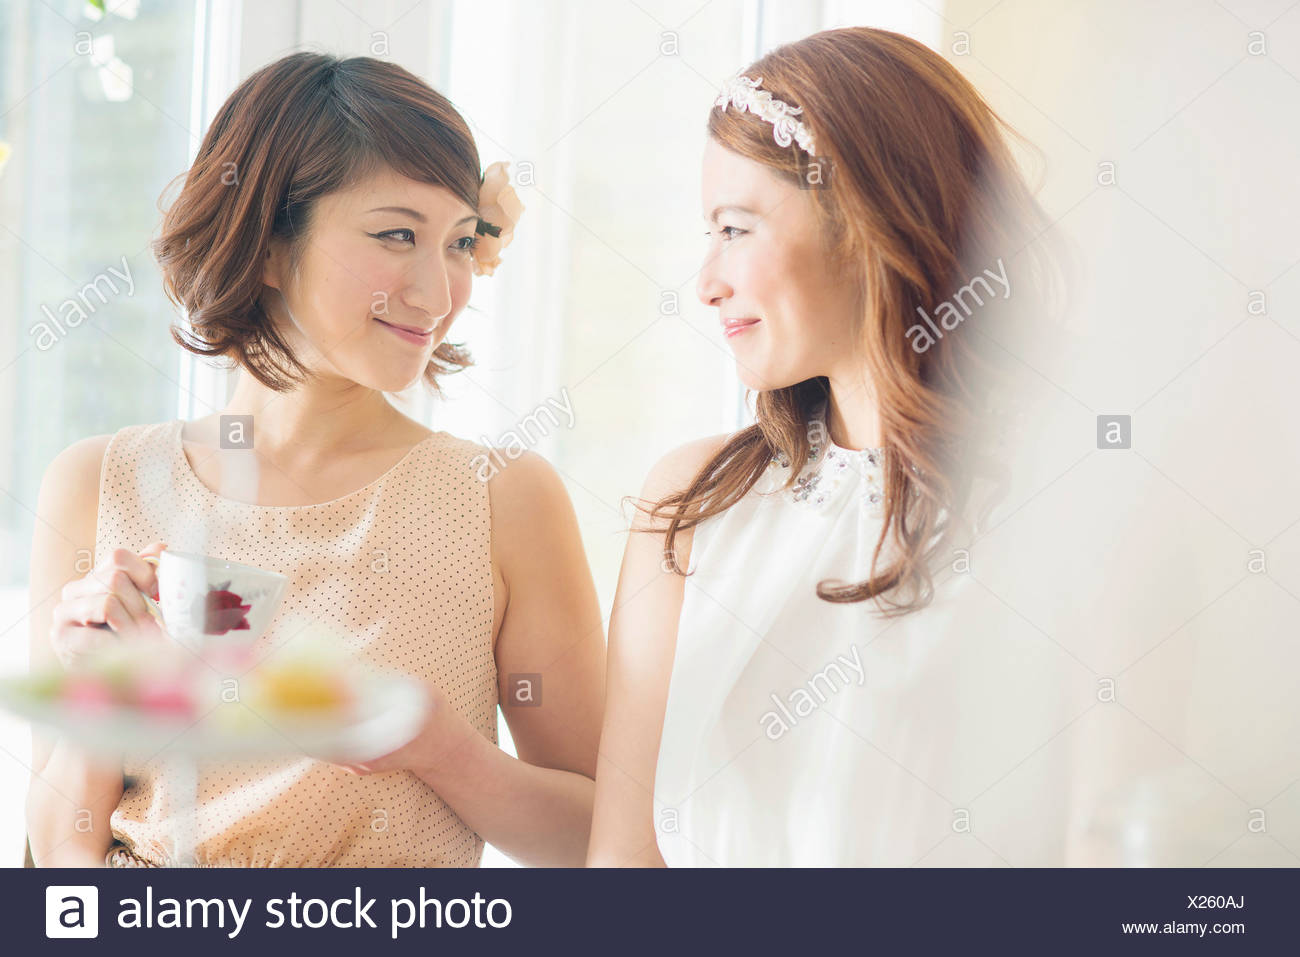 Two smiling women looking at each other - Stock Image